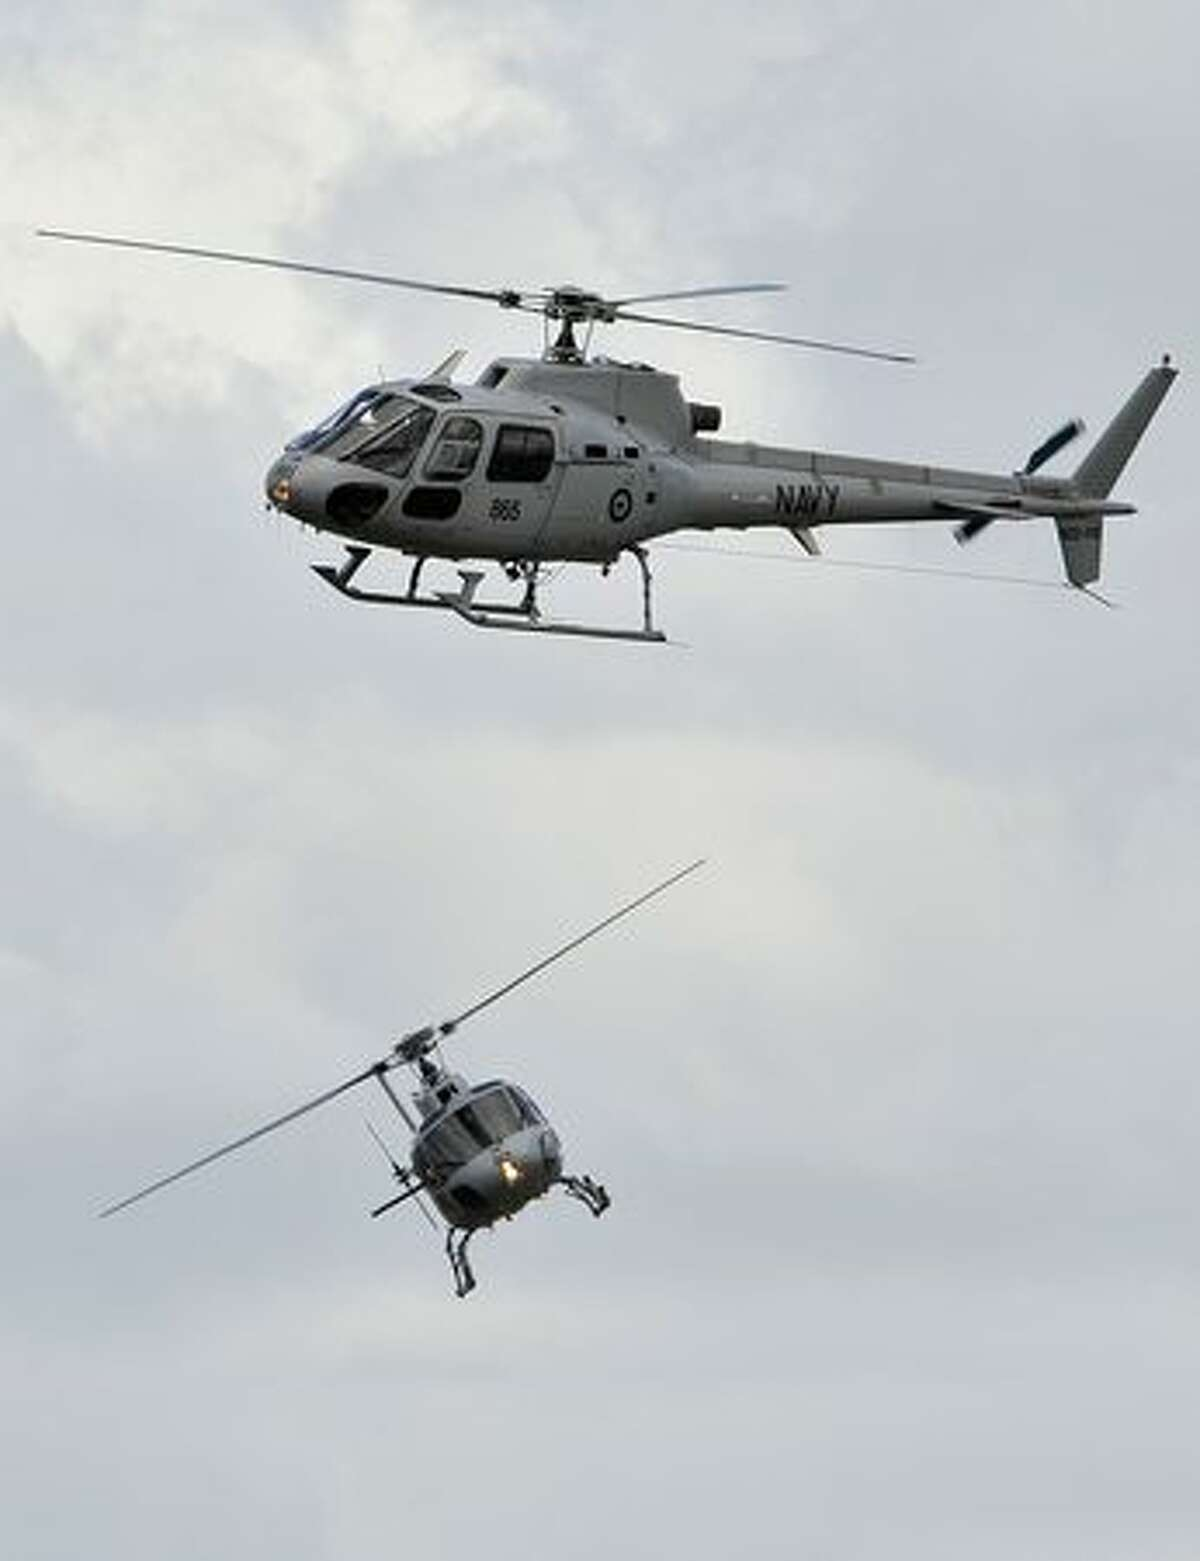 Royal Australian Navy squirrel helicopters perform on the opening day of the Australian International Airshow and Aerospace and Defence Expo in Melbourne.